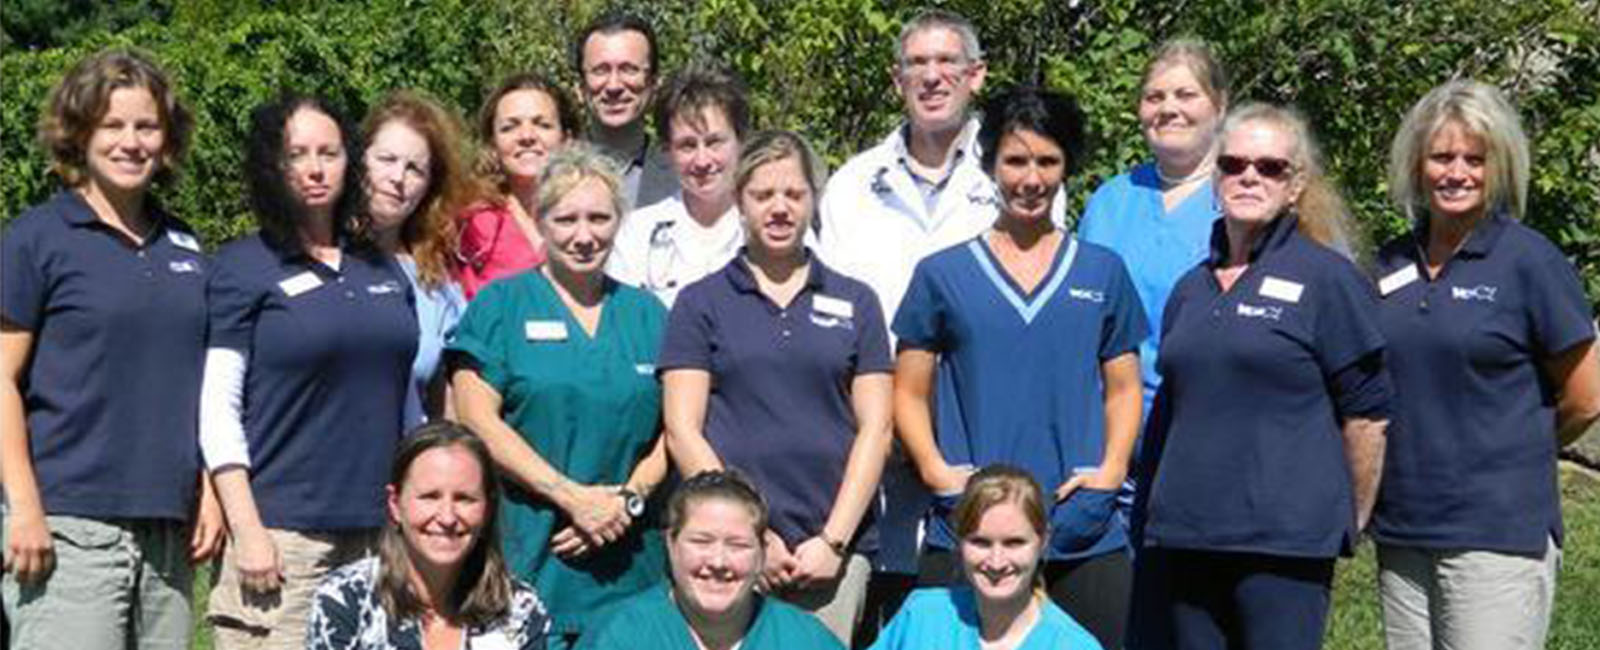 Homepage Team Picture of VCA Laconia Animal Hospital